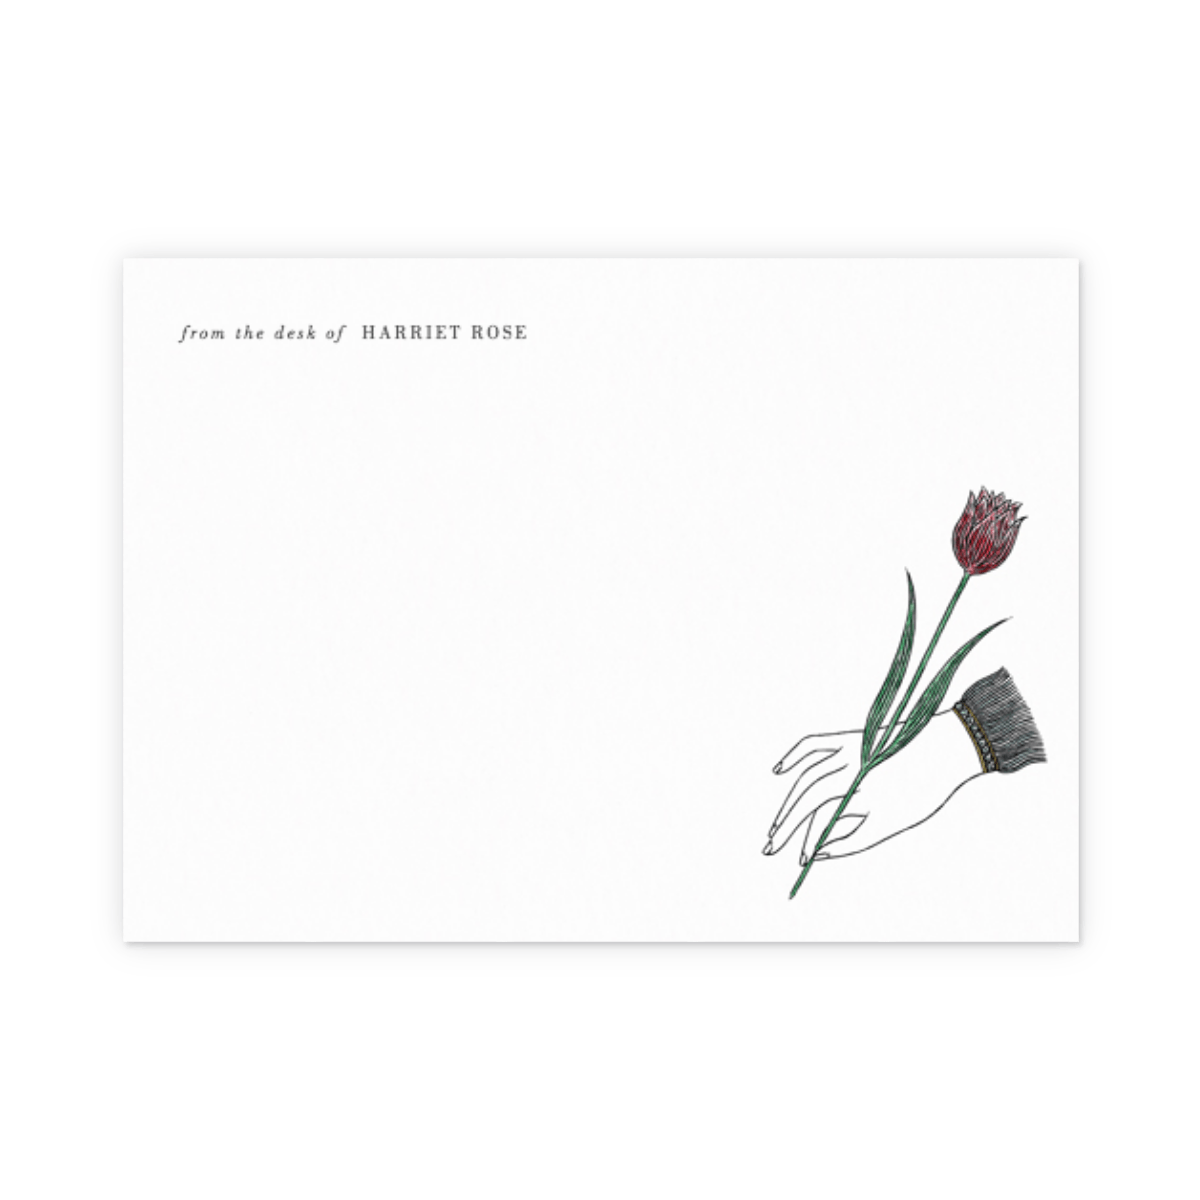 Https%3a%2f%2fwww.papier.com%2fproduct image%2f68078%2f10%2fhand print tulip 16096 front 1551982505.png?ixlib=rb 1.1